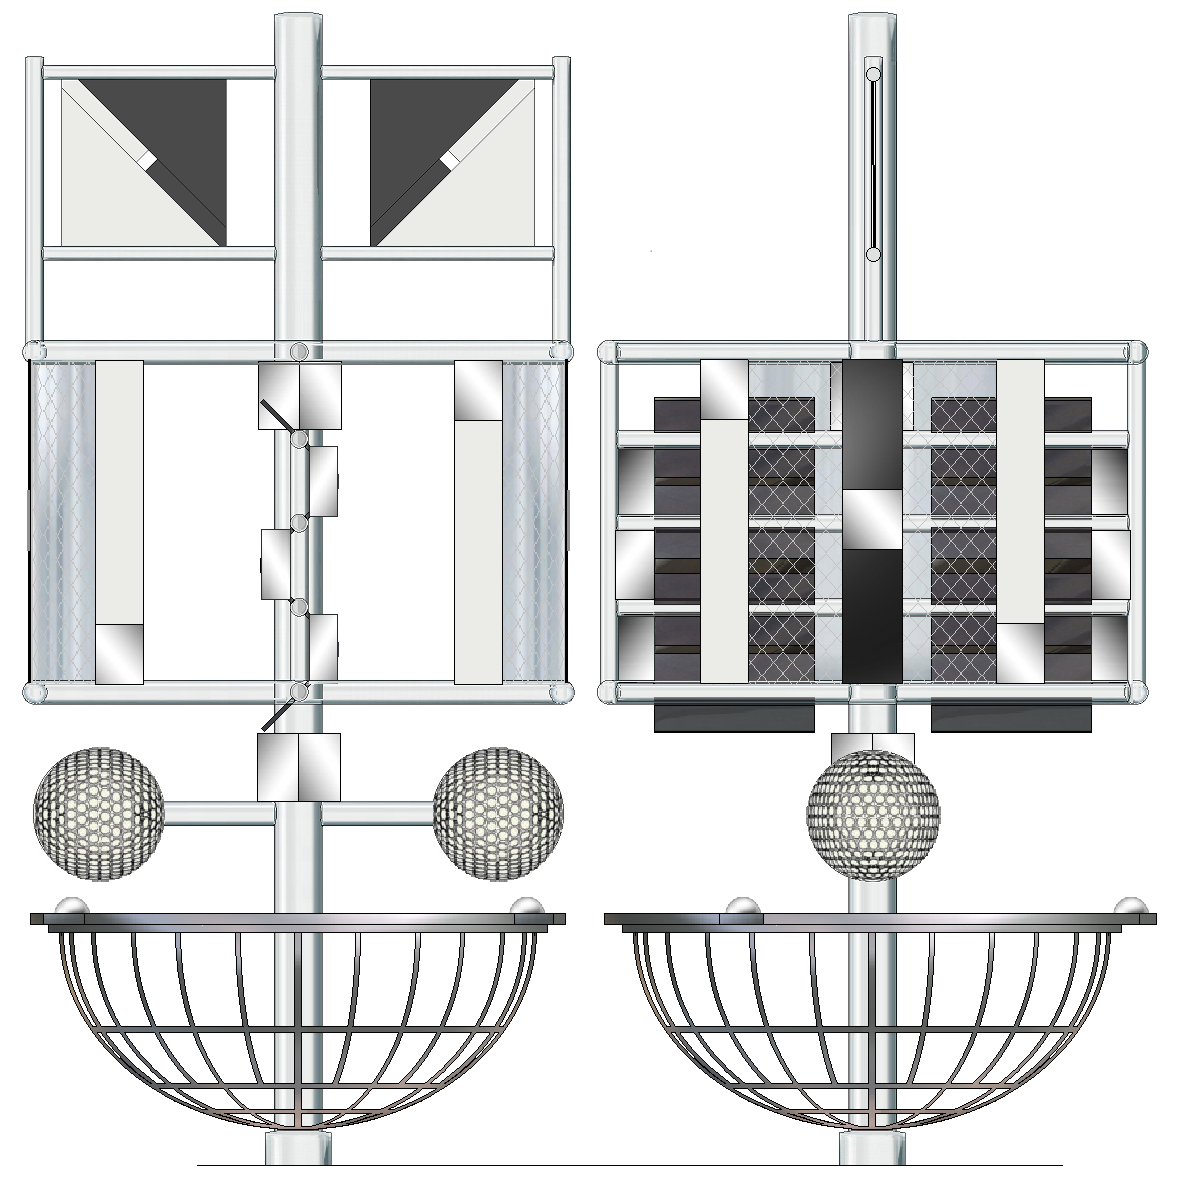 Principal Control Dimensions  Central Column with detectors inner surround and mirrors.png